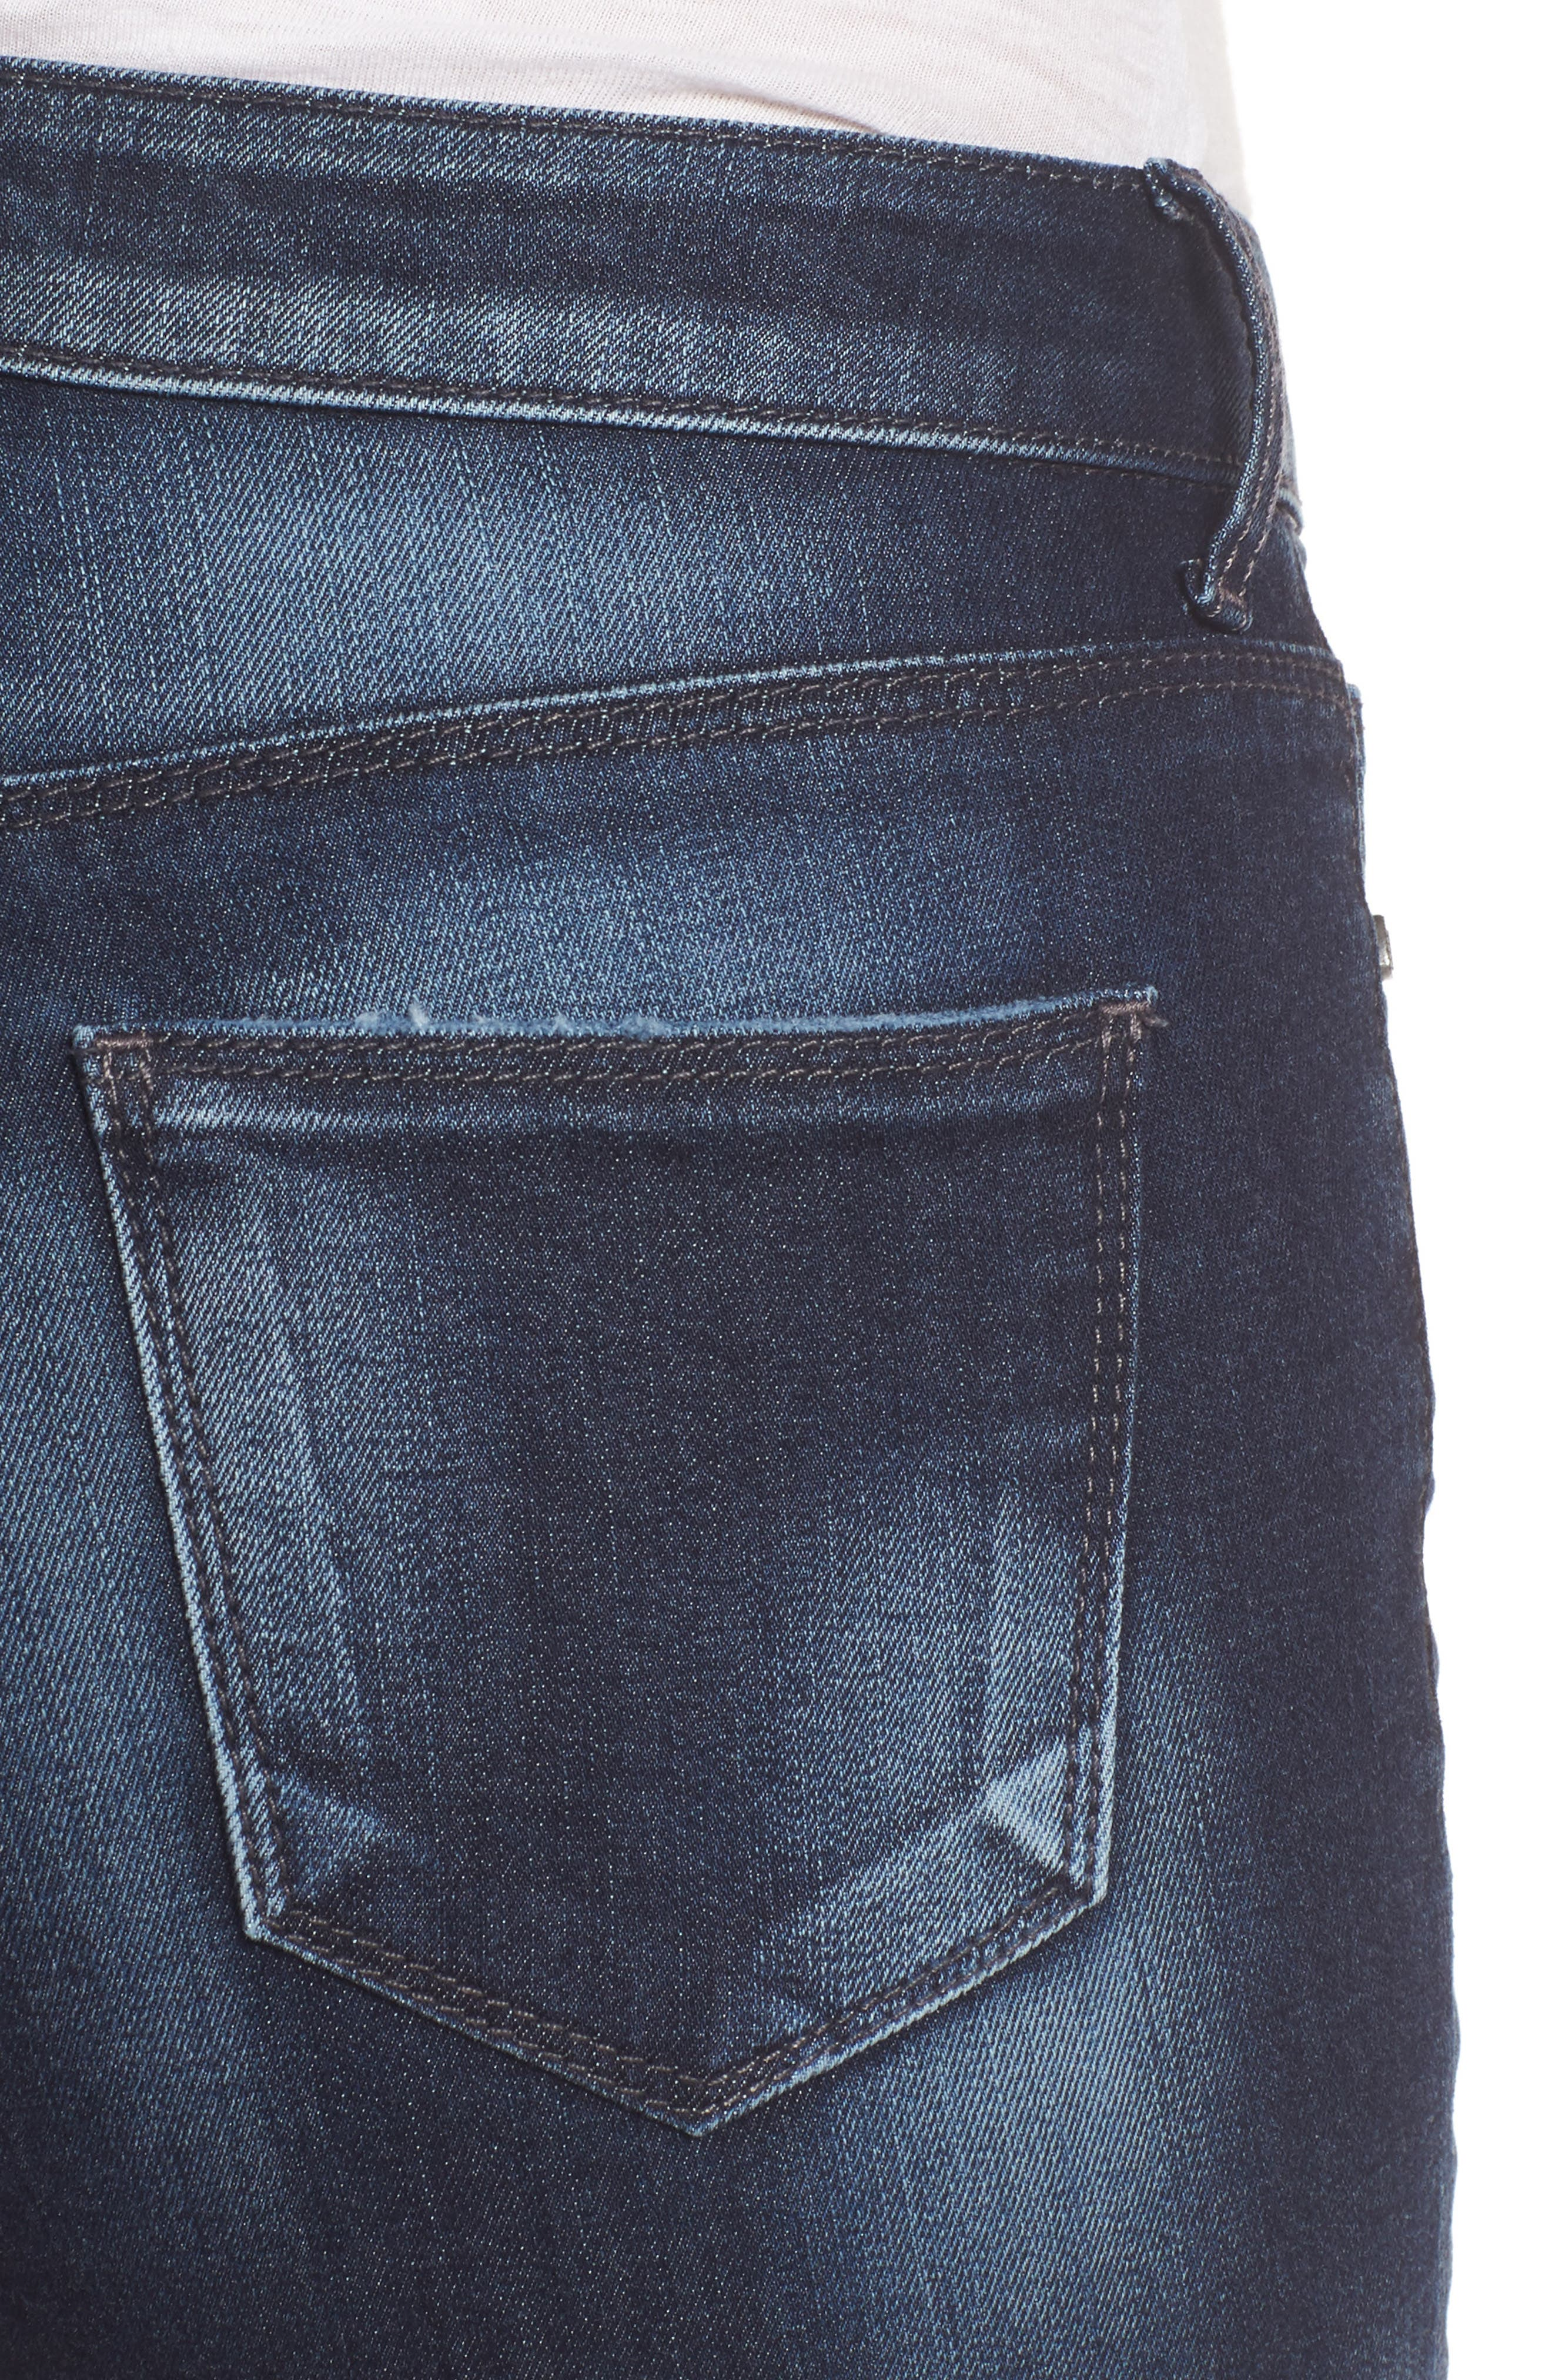 Alternate Image 4  - KUT from The Kloth Diana Curvy Fit Crop Skinny Jeans (Invigorated)